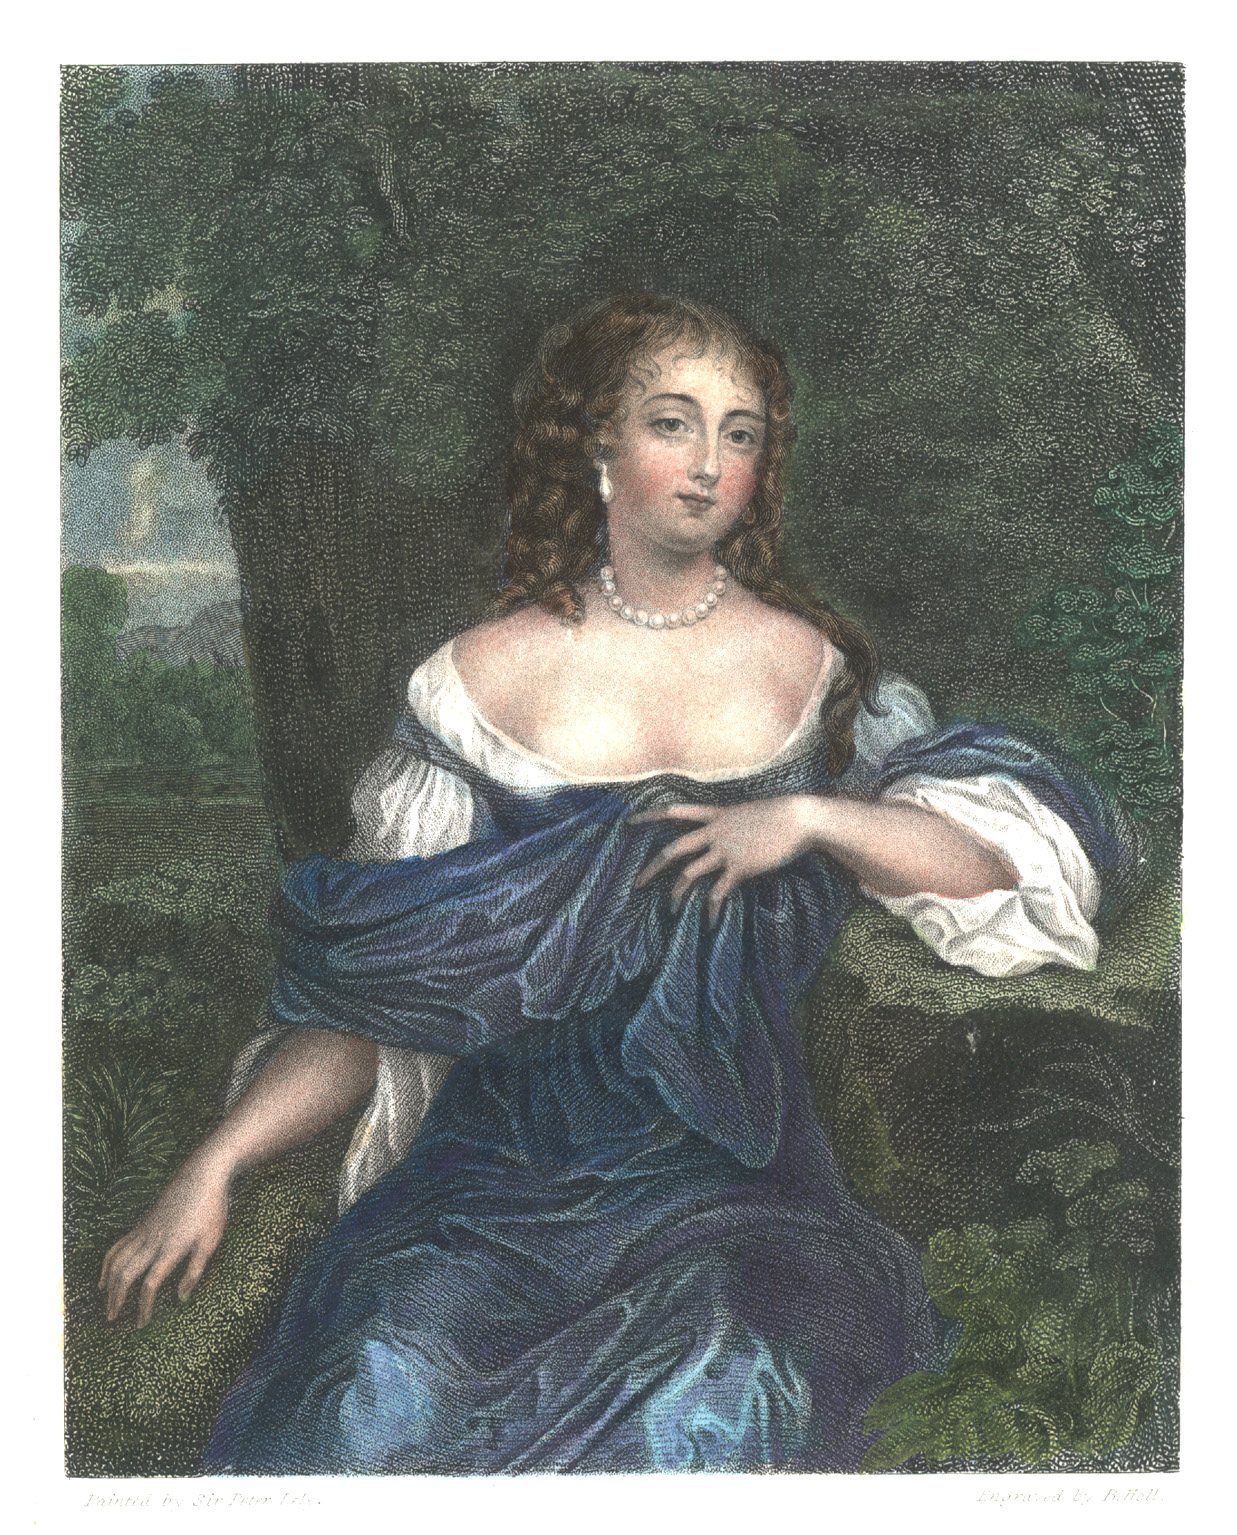 Countess of Southesk. Sir Peter Lely portrait. Engraved c1838.